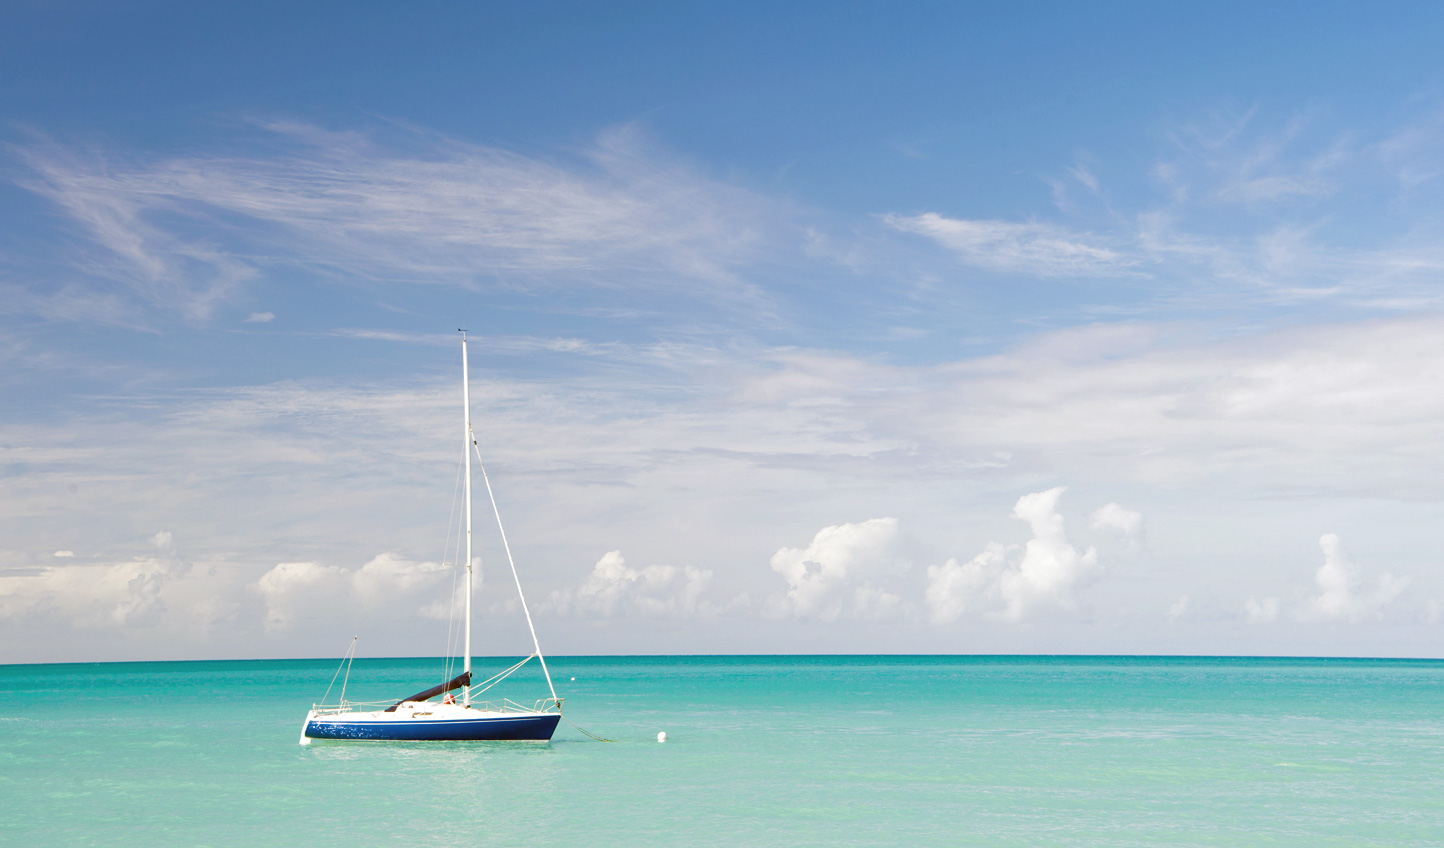 Spend a day out on the Caribbean Sea